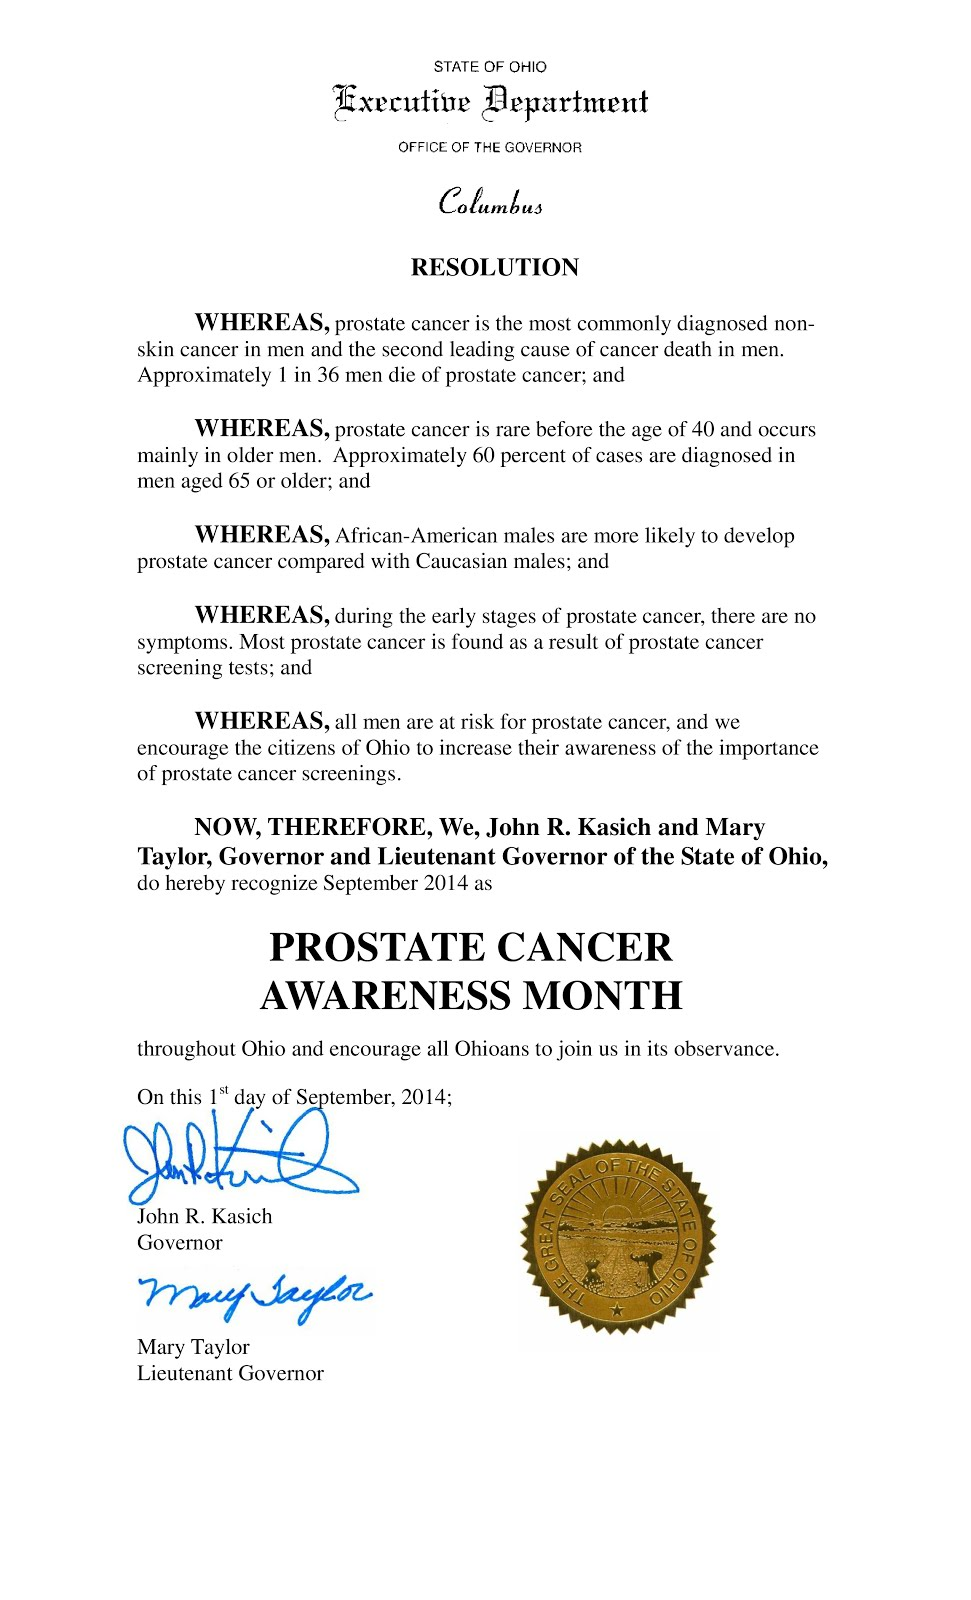 Prostate Cancer Awareness Month 2014